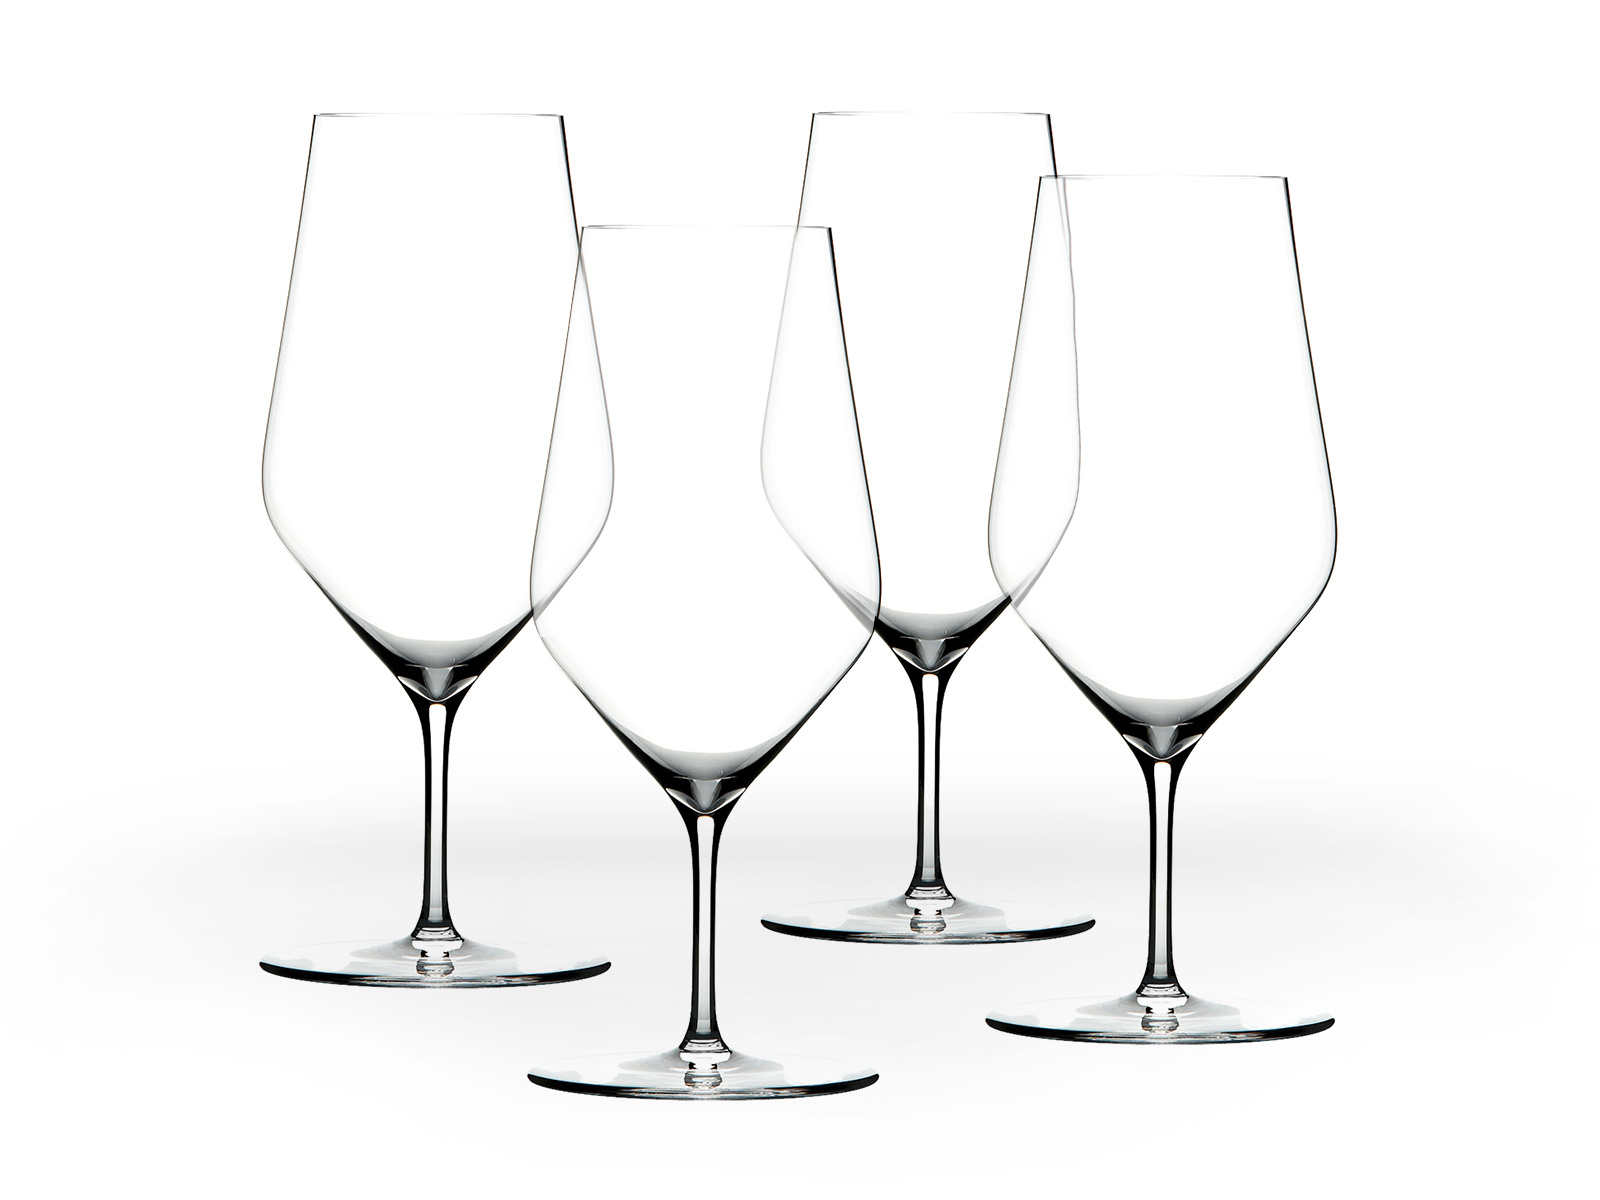 Zalto-Wine-Monger-Water-Glass-4-1600x1200_sku_cropped_1600x1200_q95_58fc16